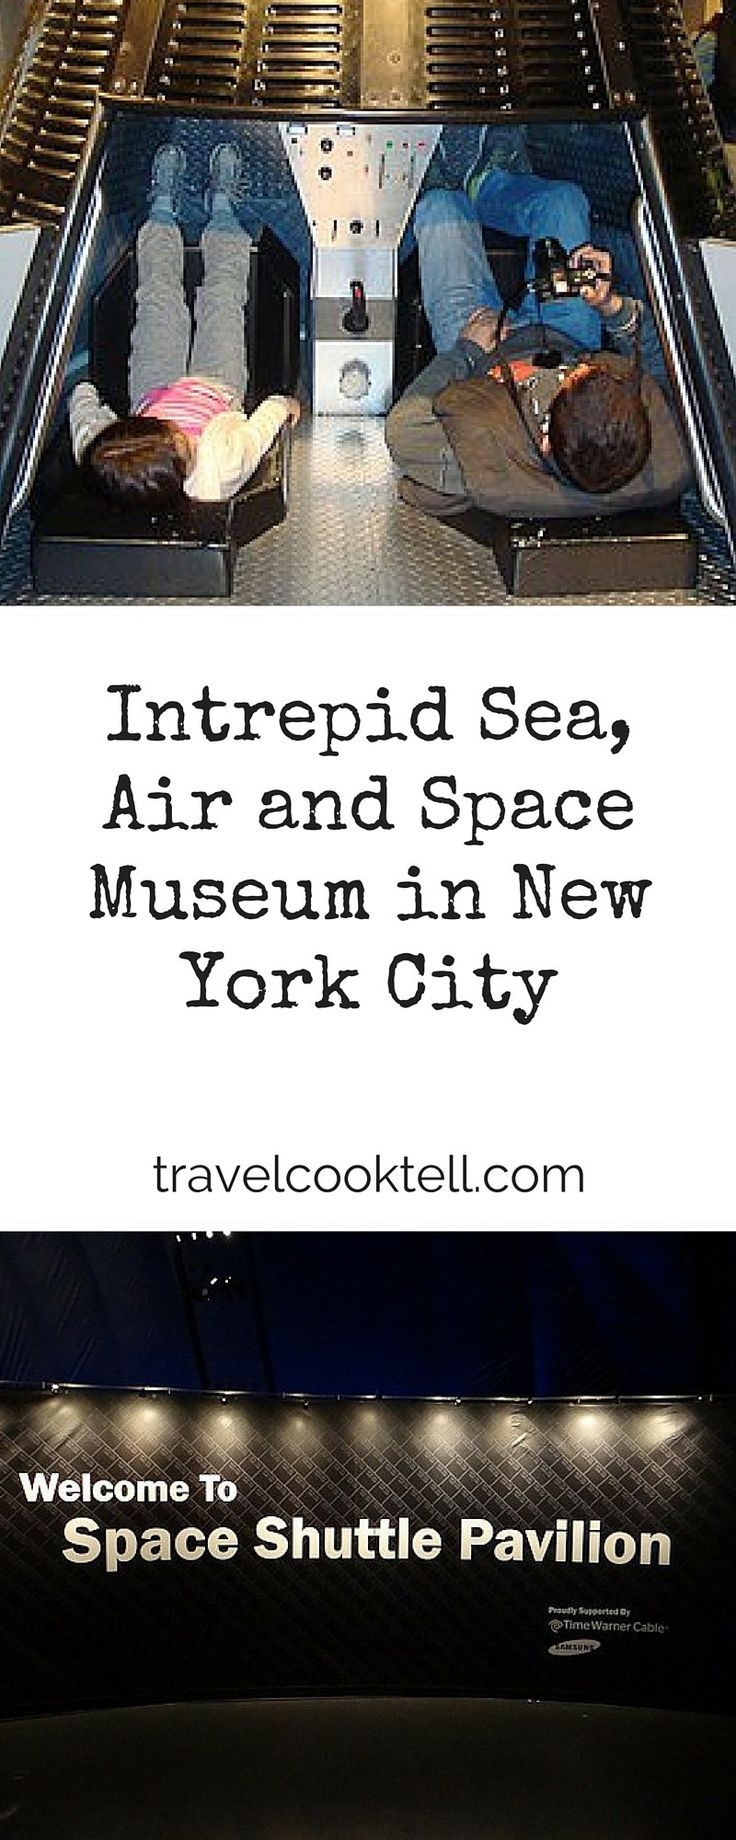 Intrepid Sea, Air and Space Museum in New York City | Travel Cook Tell